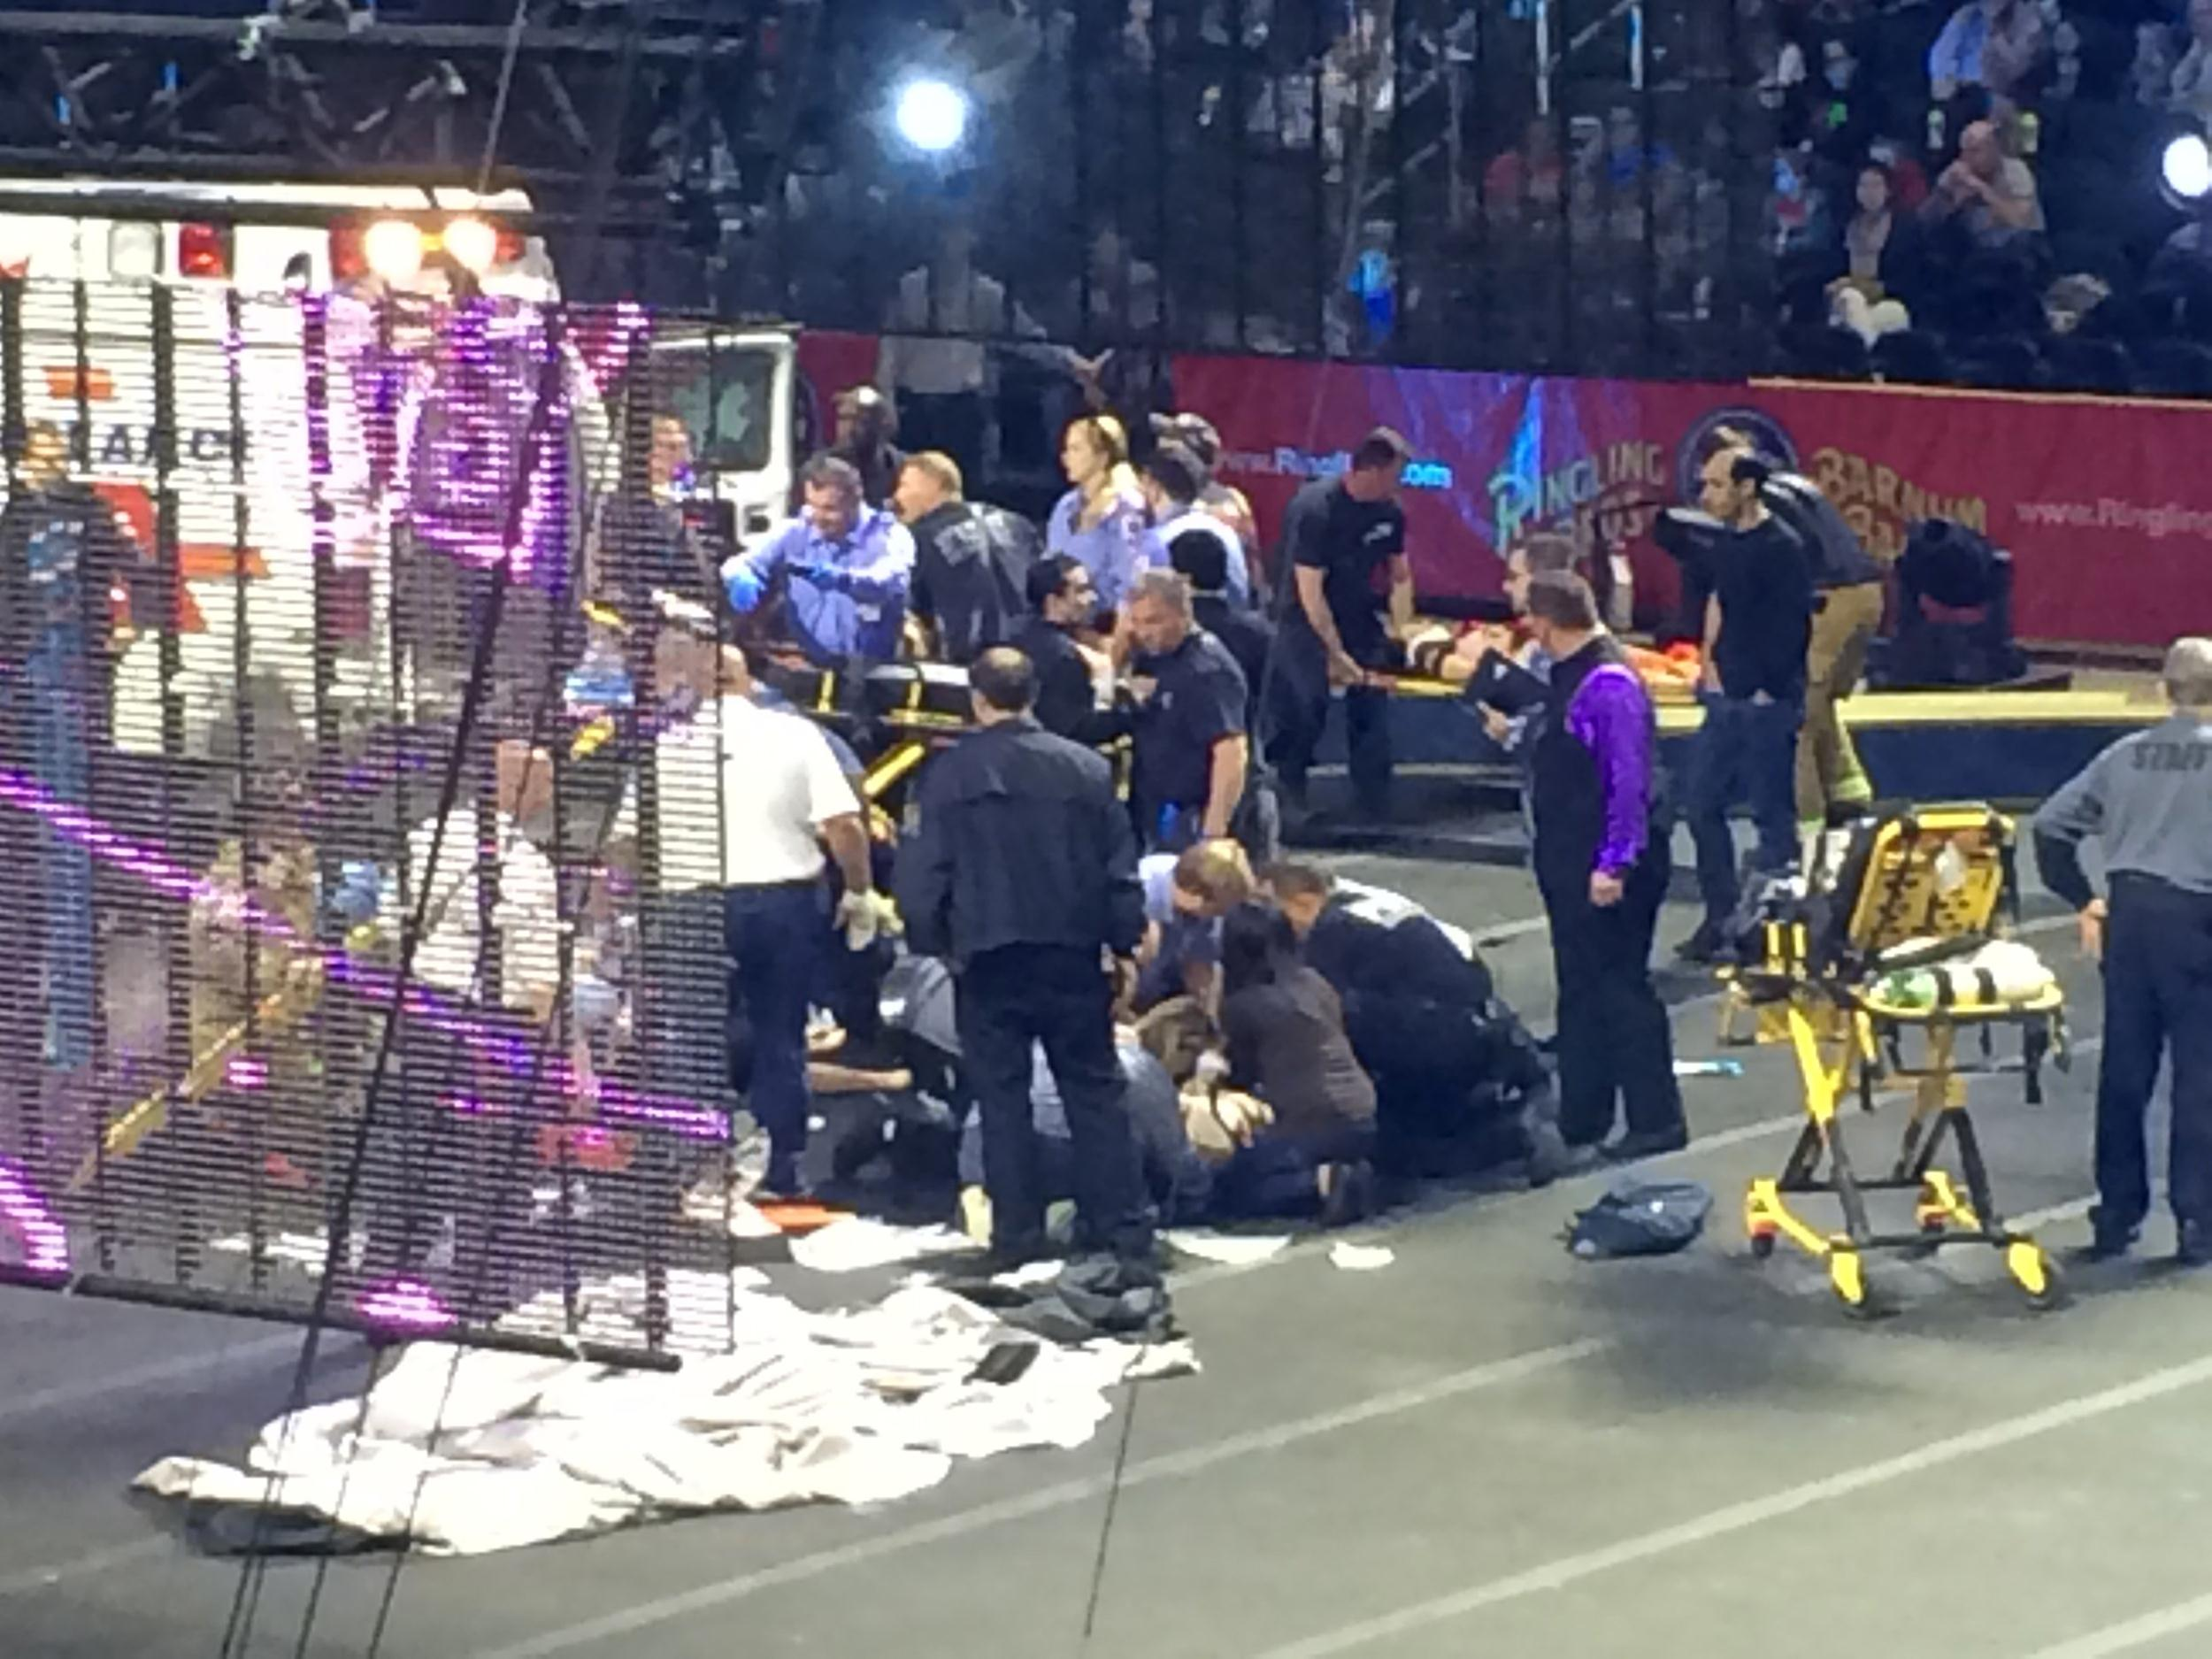 Image: First responders aid acrobats who fell during a routine.